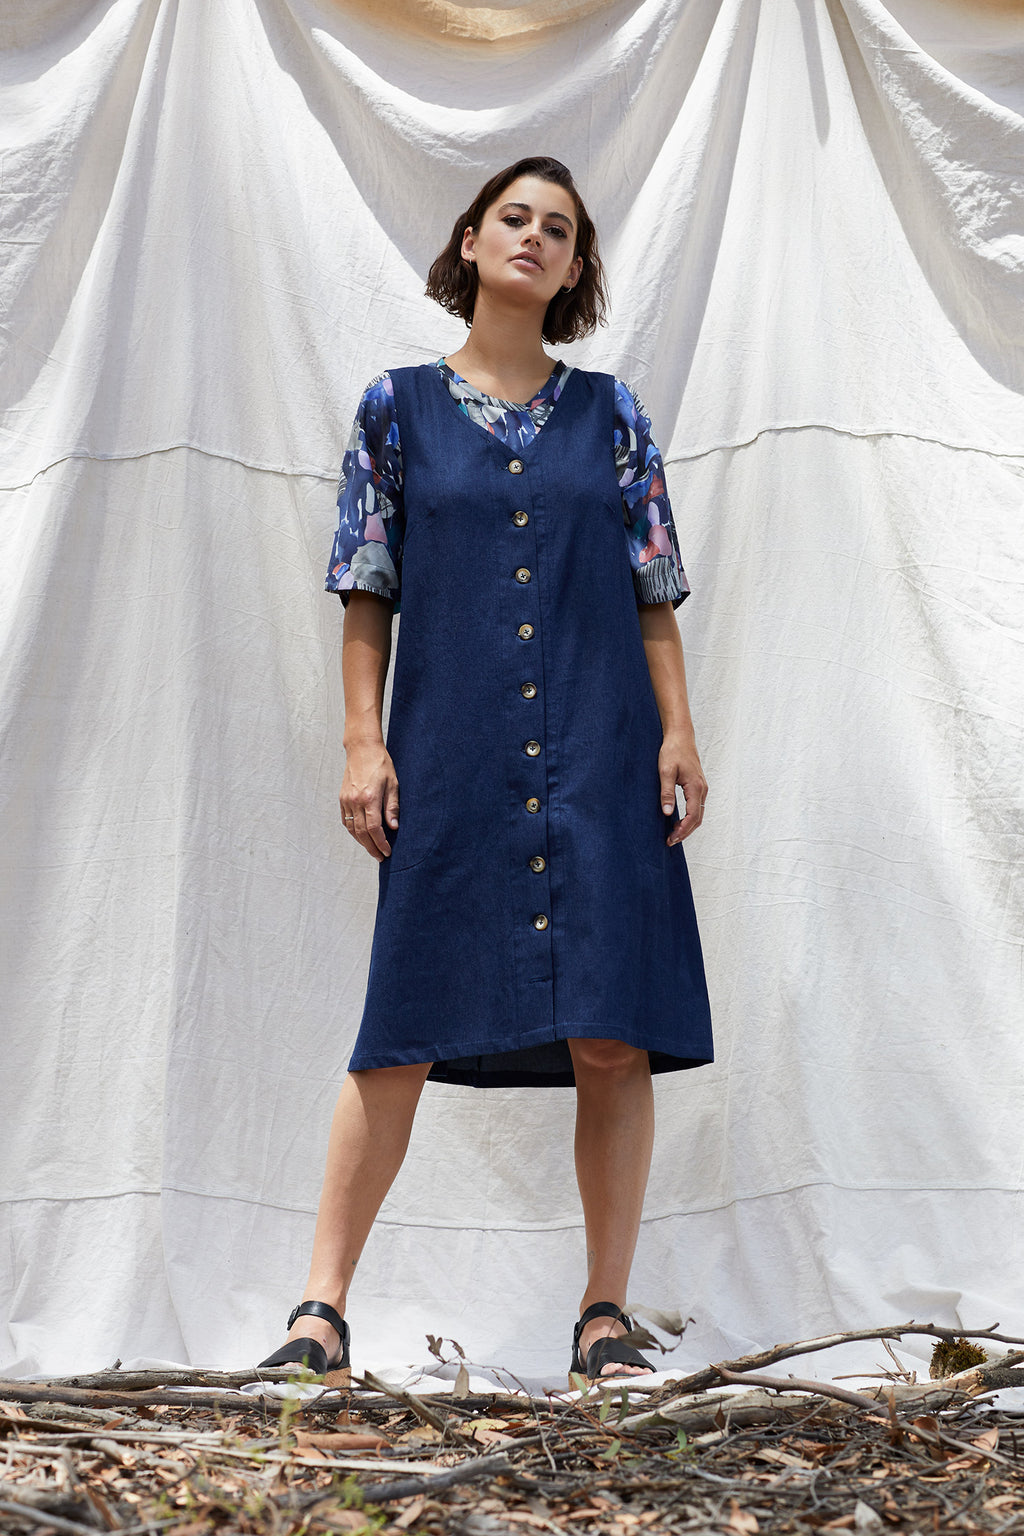 Denim Lottie Dress Dresses Ethical Sustainable Vegan Organic Australian fashion womens clothes